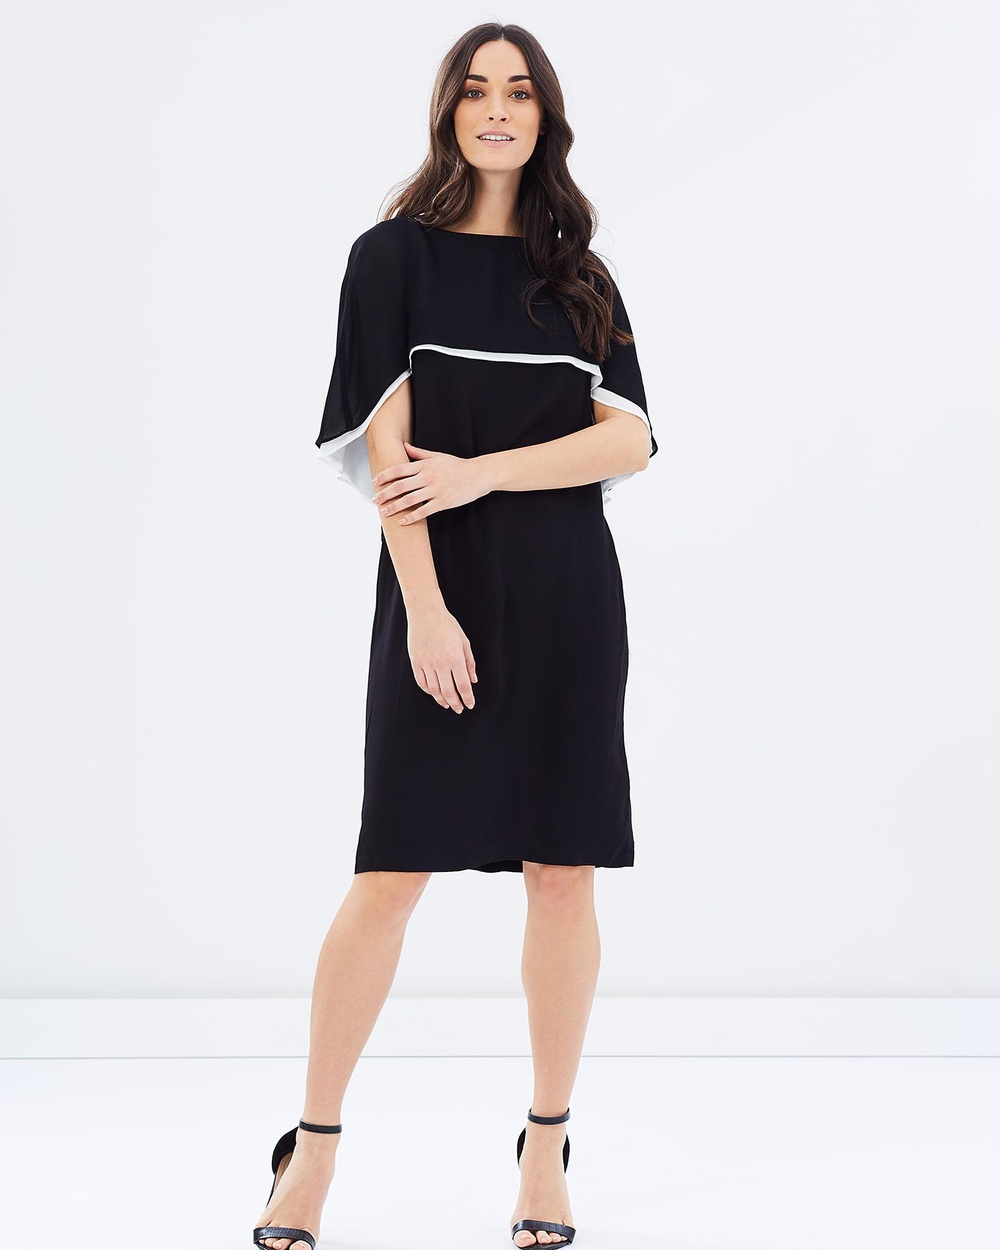 Faye Black Label Signature Cape Dress Dresses Black & White Signature Cape Dress